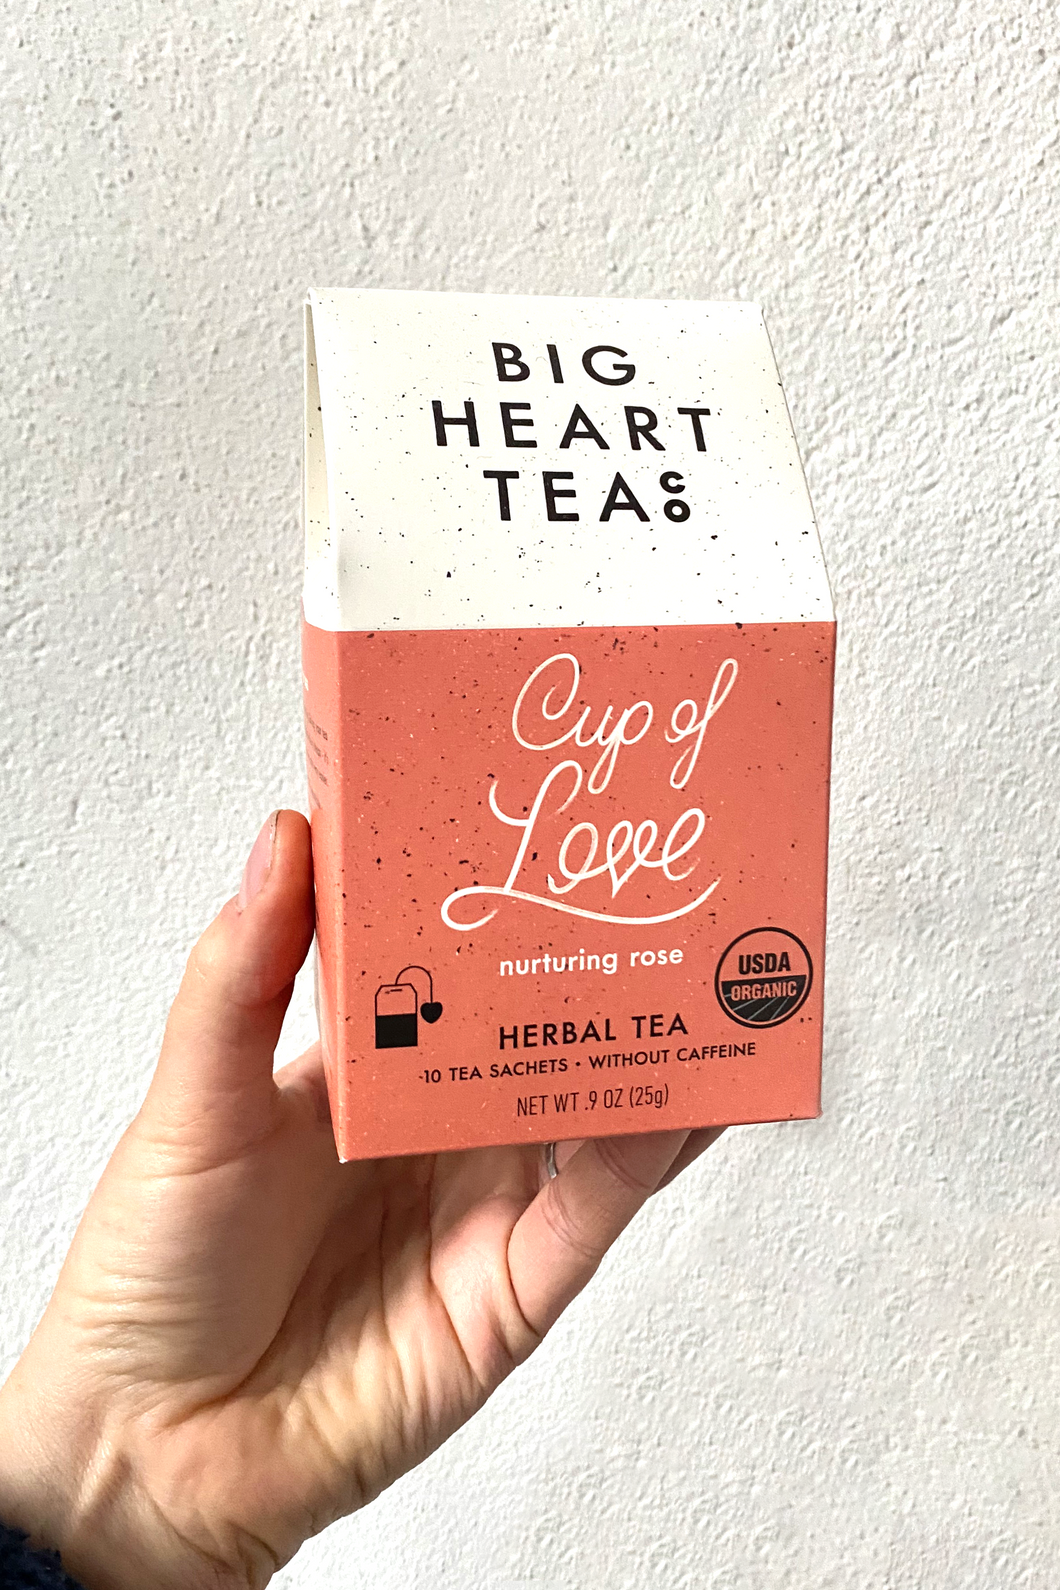 BIG HEART TEA CO. Cup of Love Tea